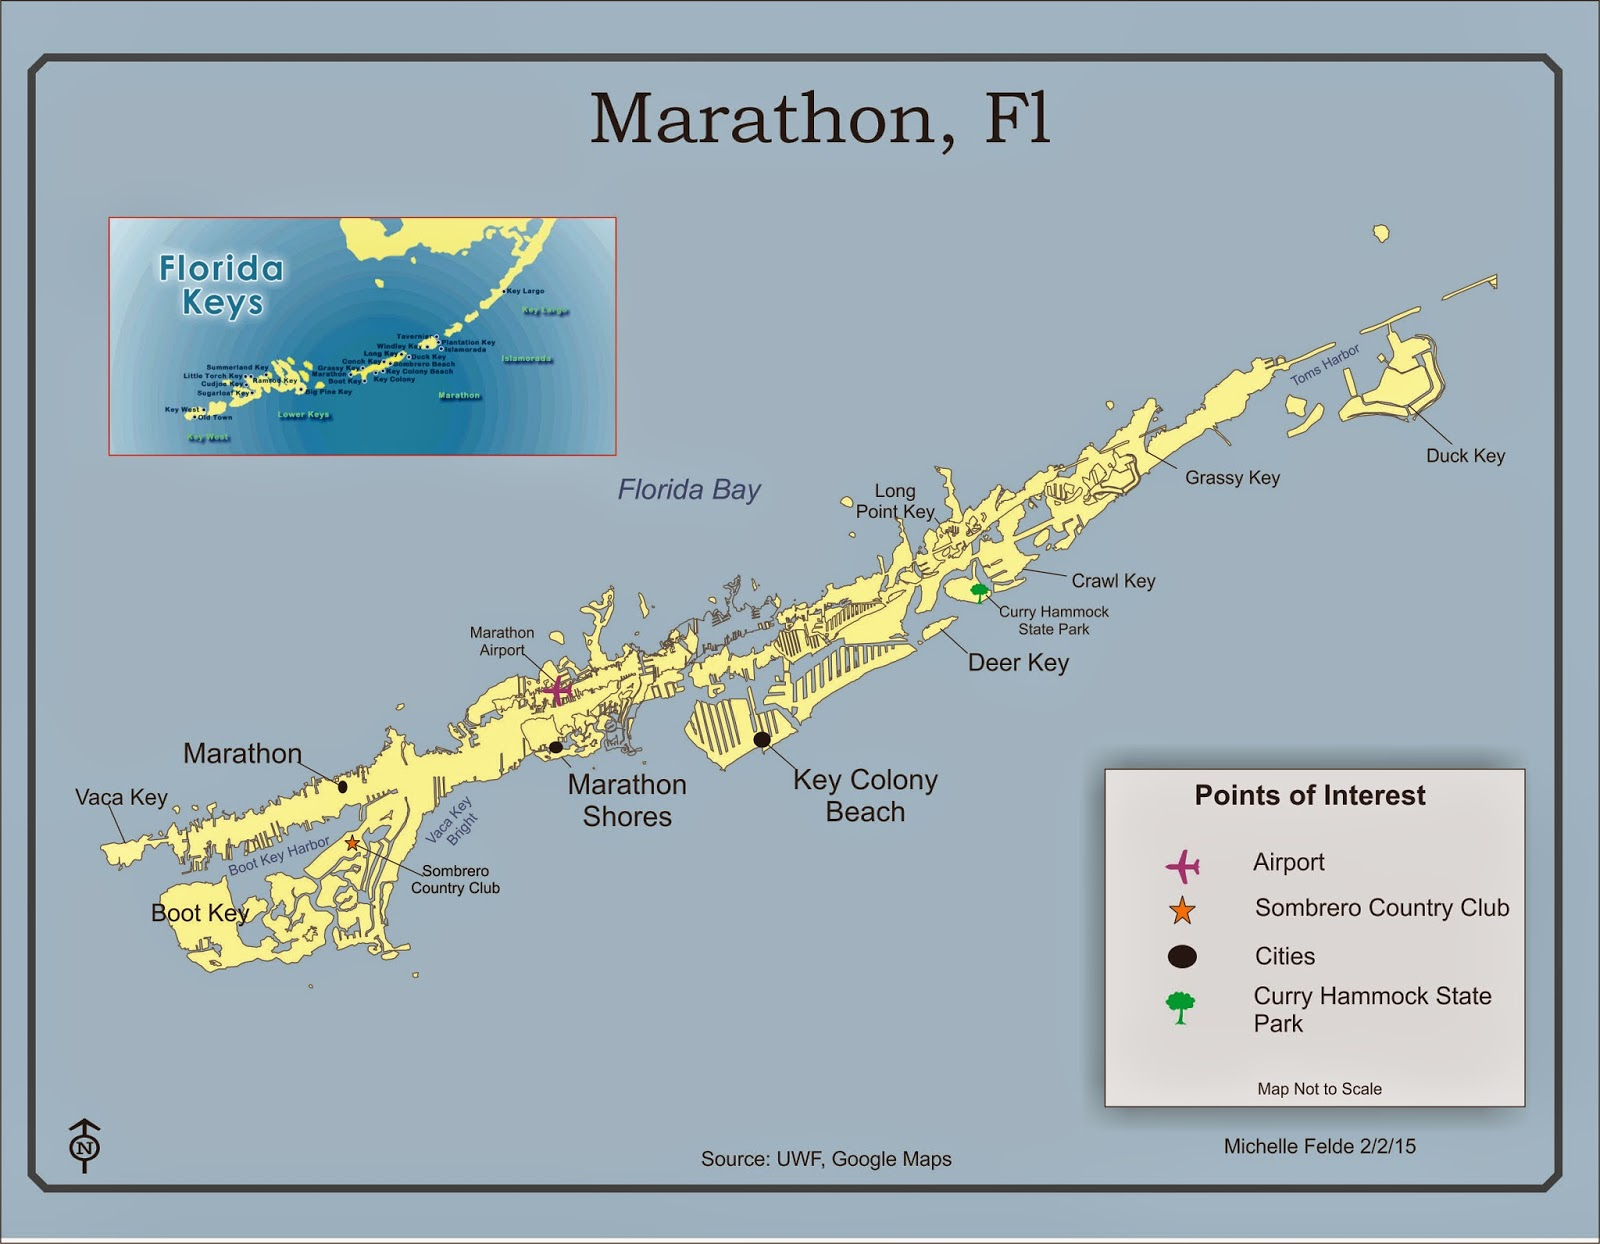 this map is of the marathon florida of the florida keys the major cities were labeled along with a state park and airport another key element to label